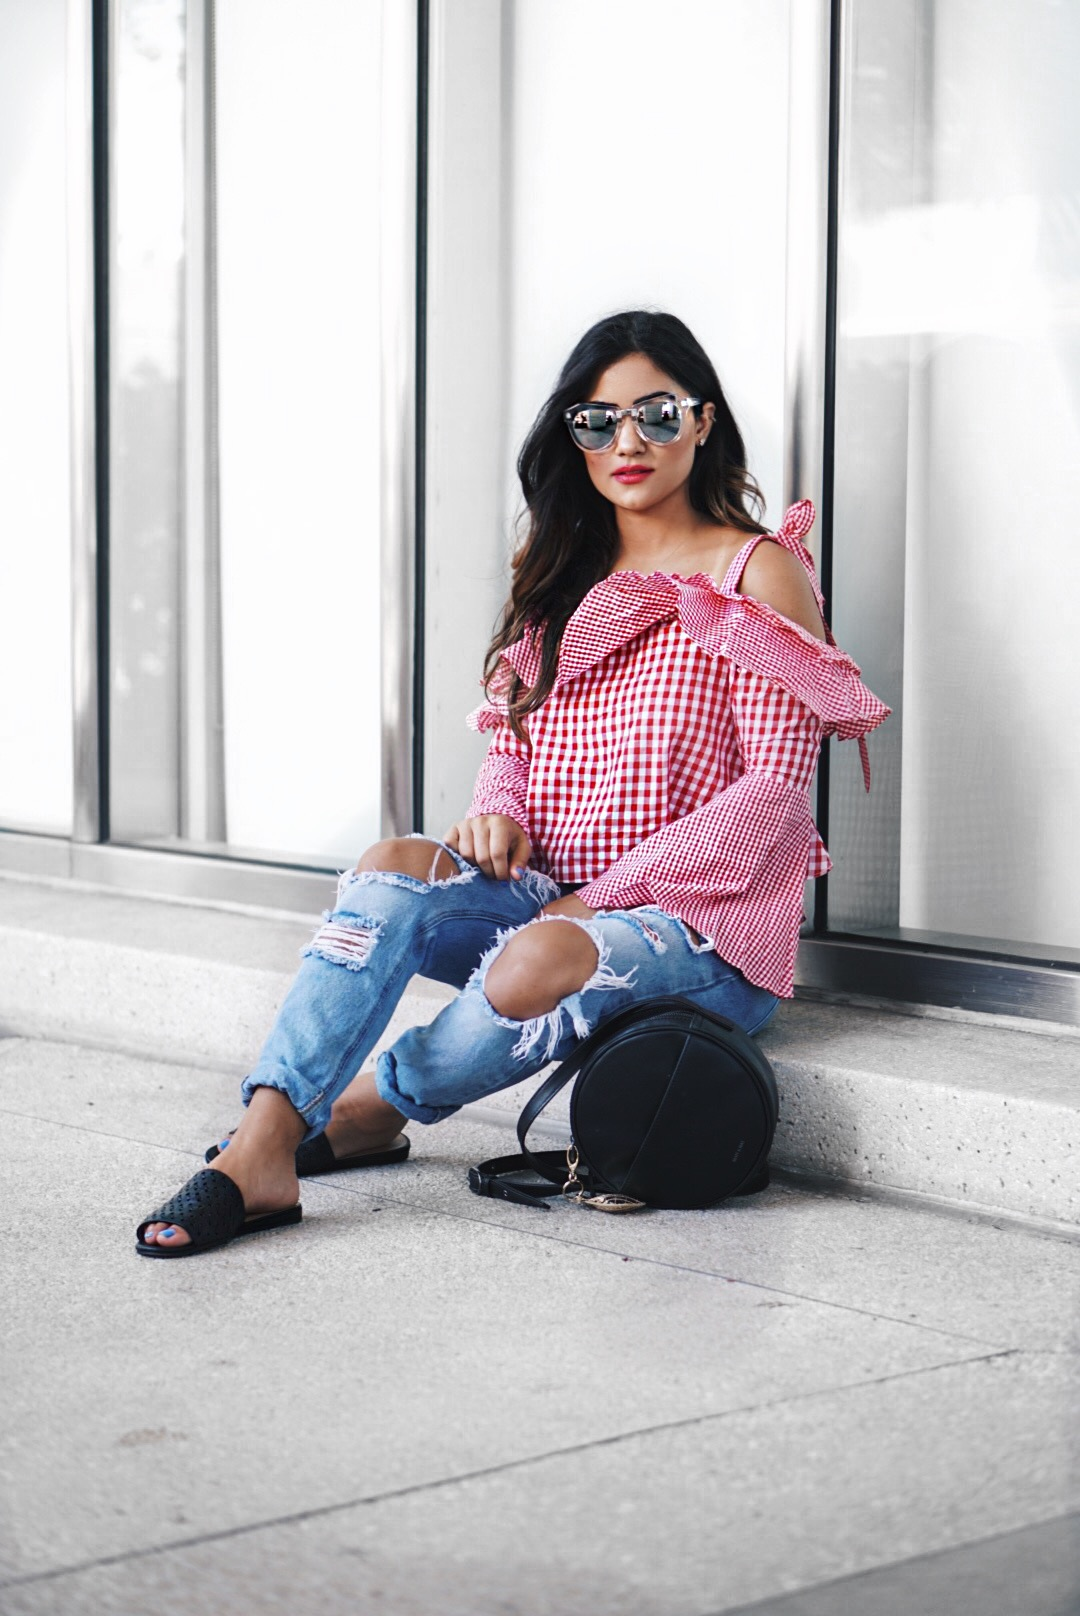 Sugar Love Chic blogger Krista Perez styles red gingham top and boyfriend jeans